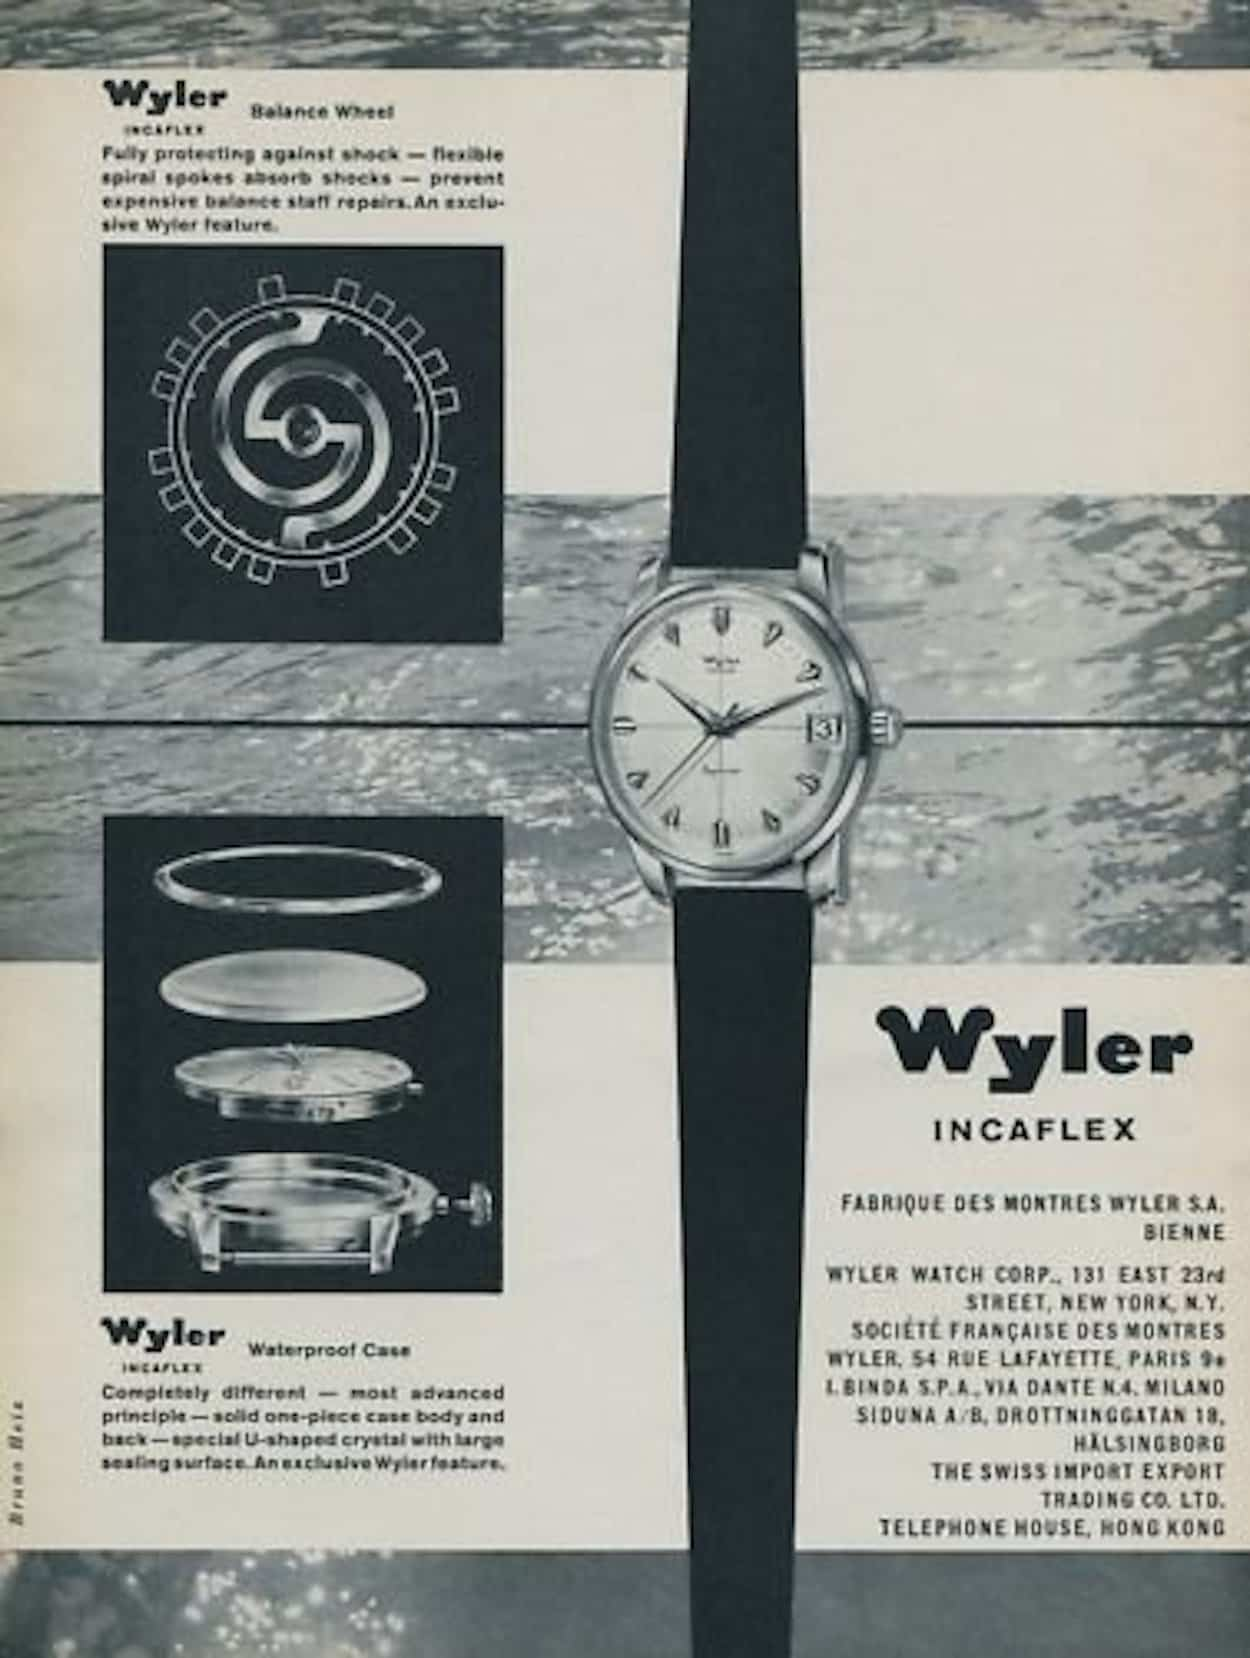 A Wyler Ad showing the Incaflex and the typical Wyler case design